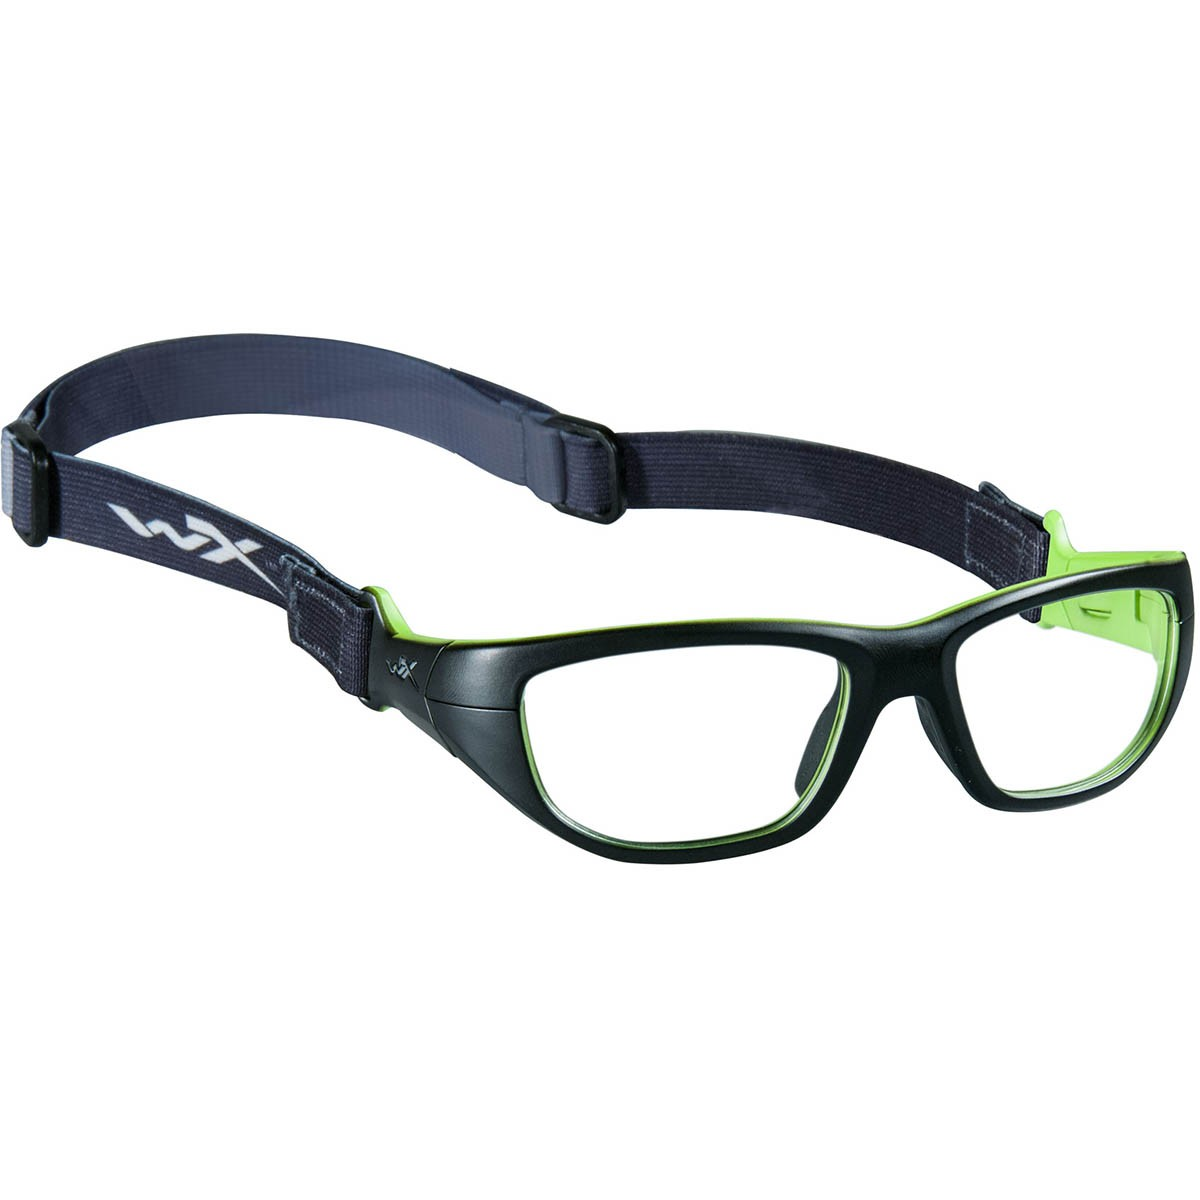 Lime Green Eyeglass Frames : WileyxYFVIC02 WX Victory Safety Glasses - Matte Black w ...